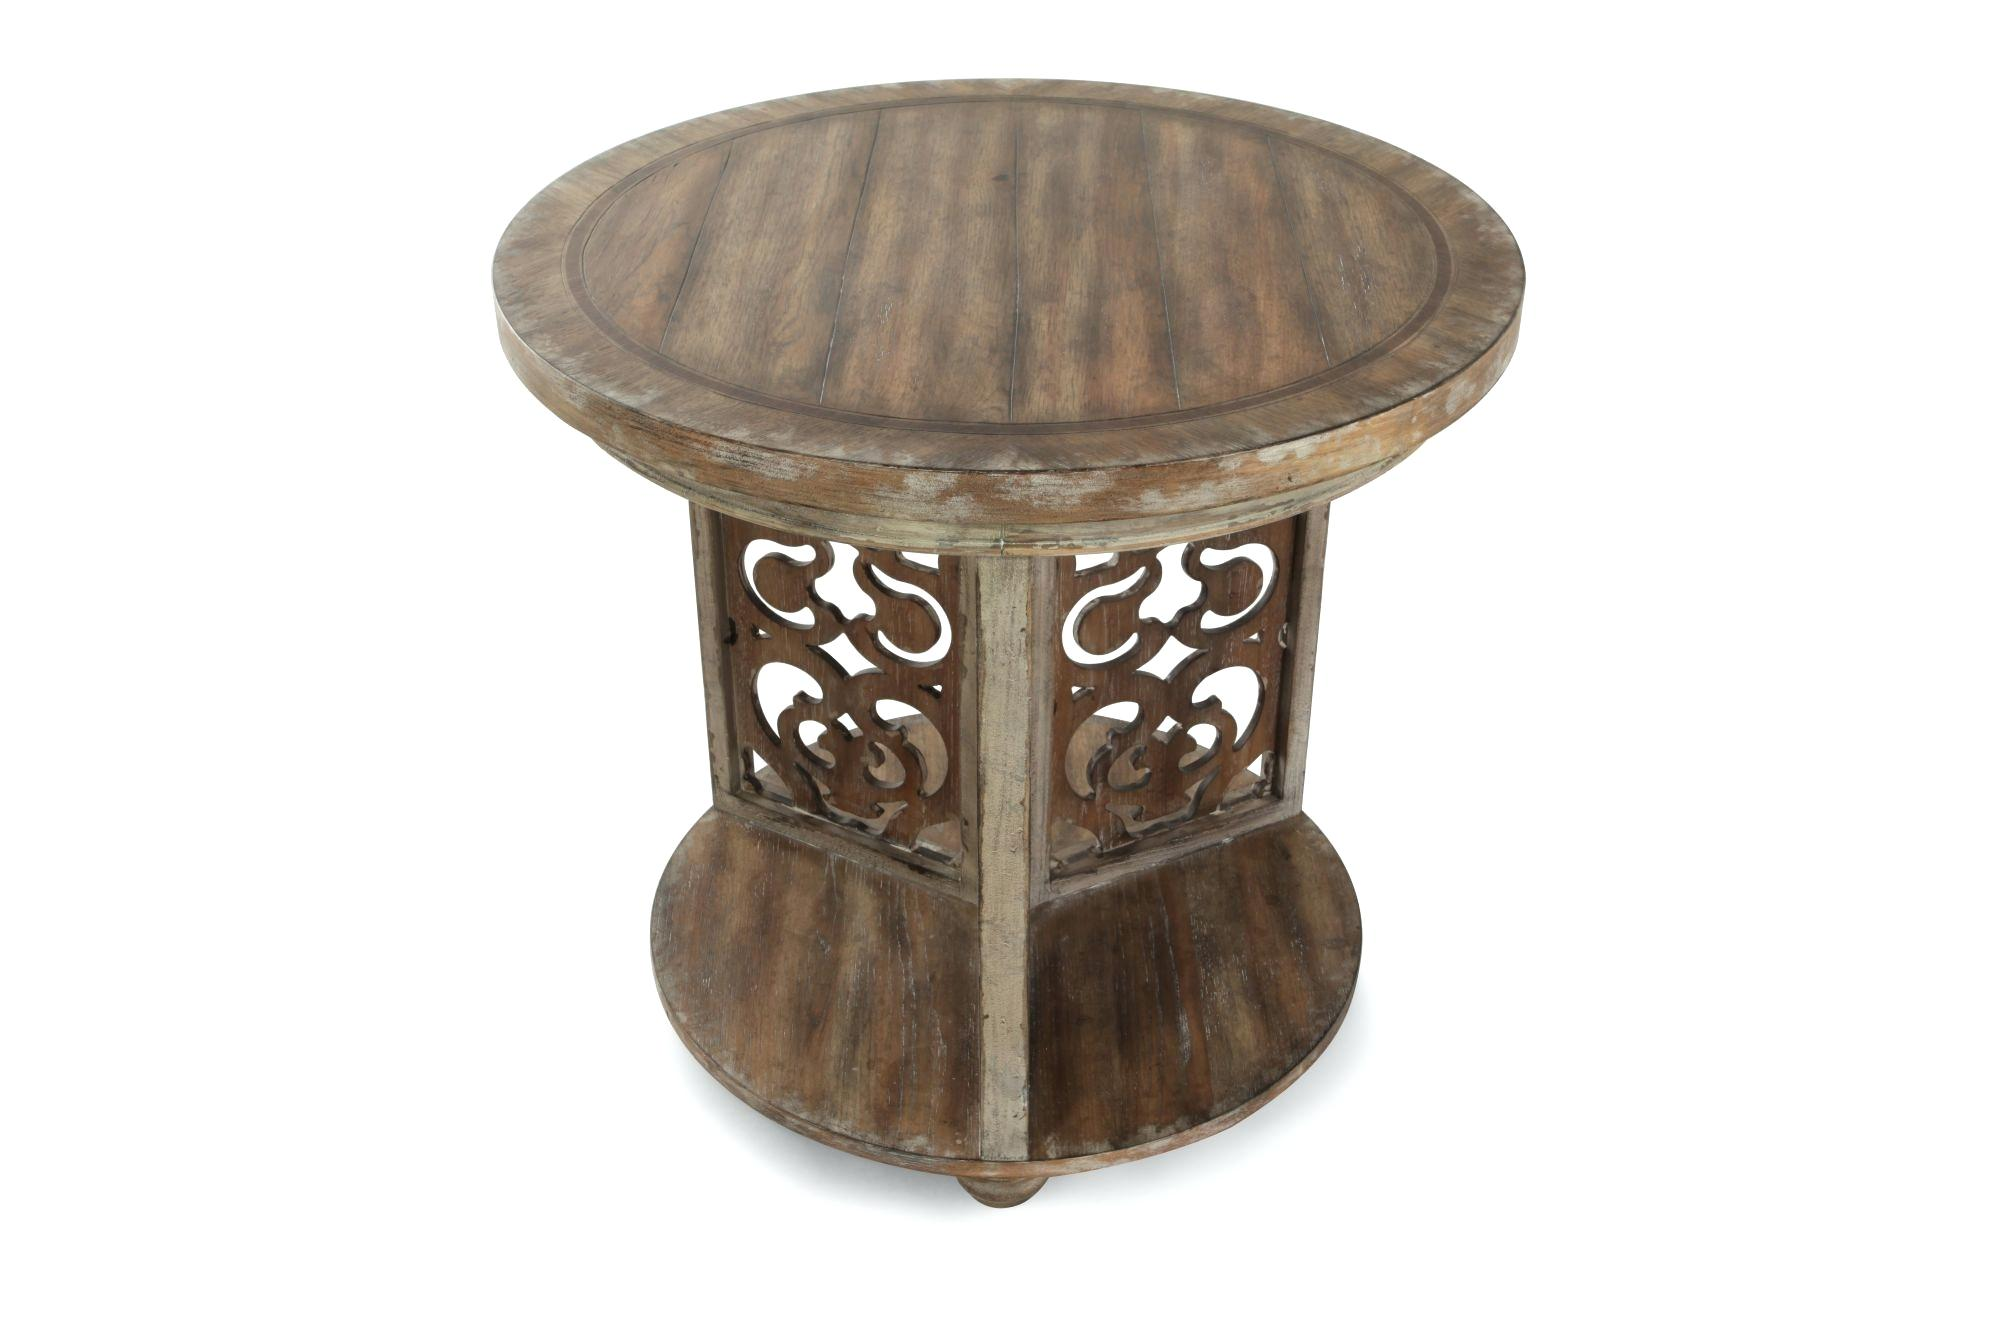 wood and iron accent tables metal ornella adjustable table multi level target traditional scroll round brown brothers kitchen delectable hook threshold full size cherry coffee